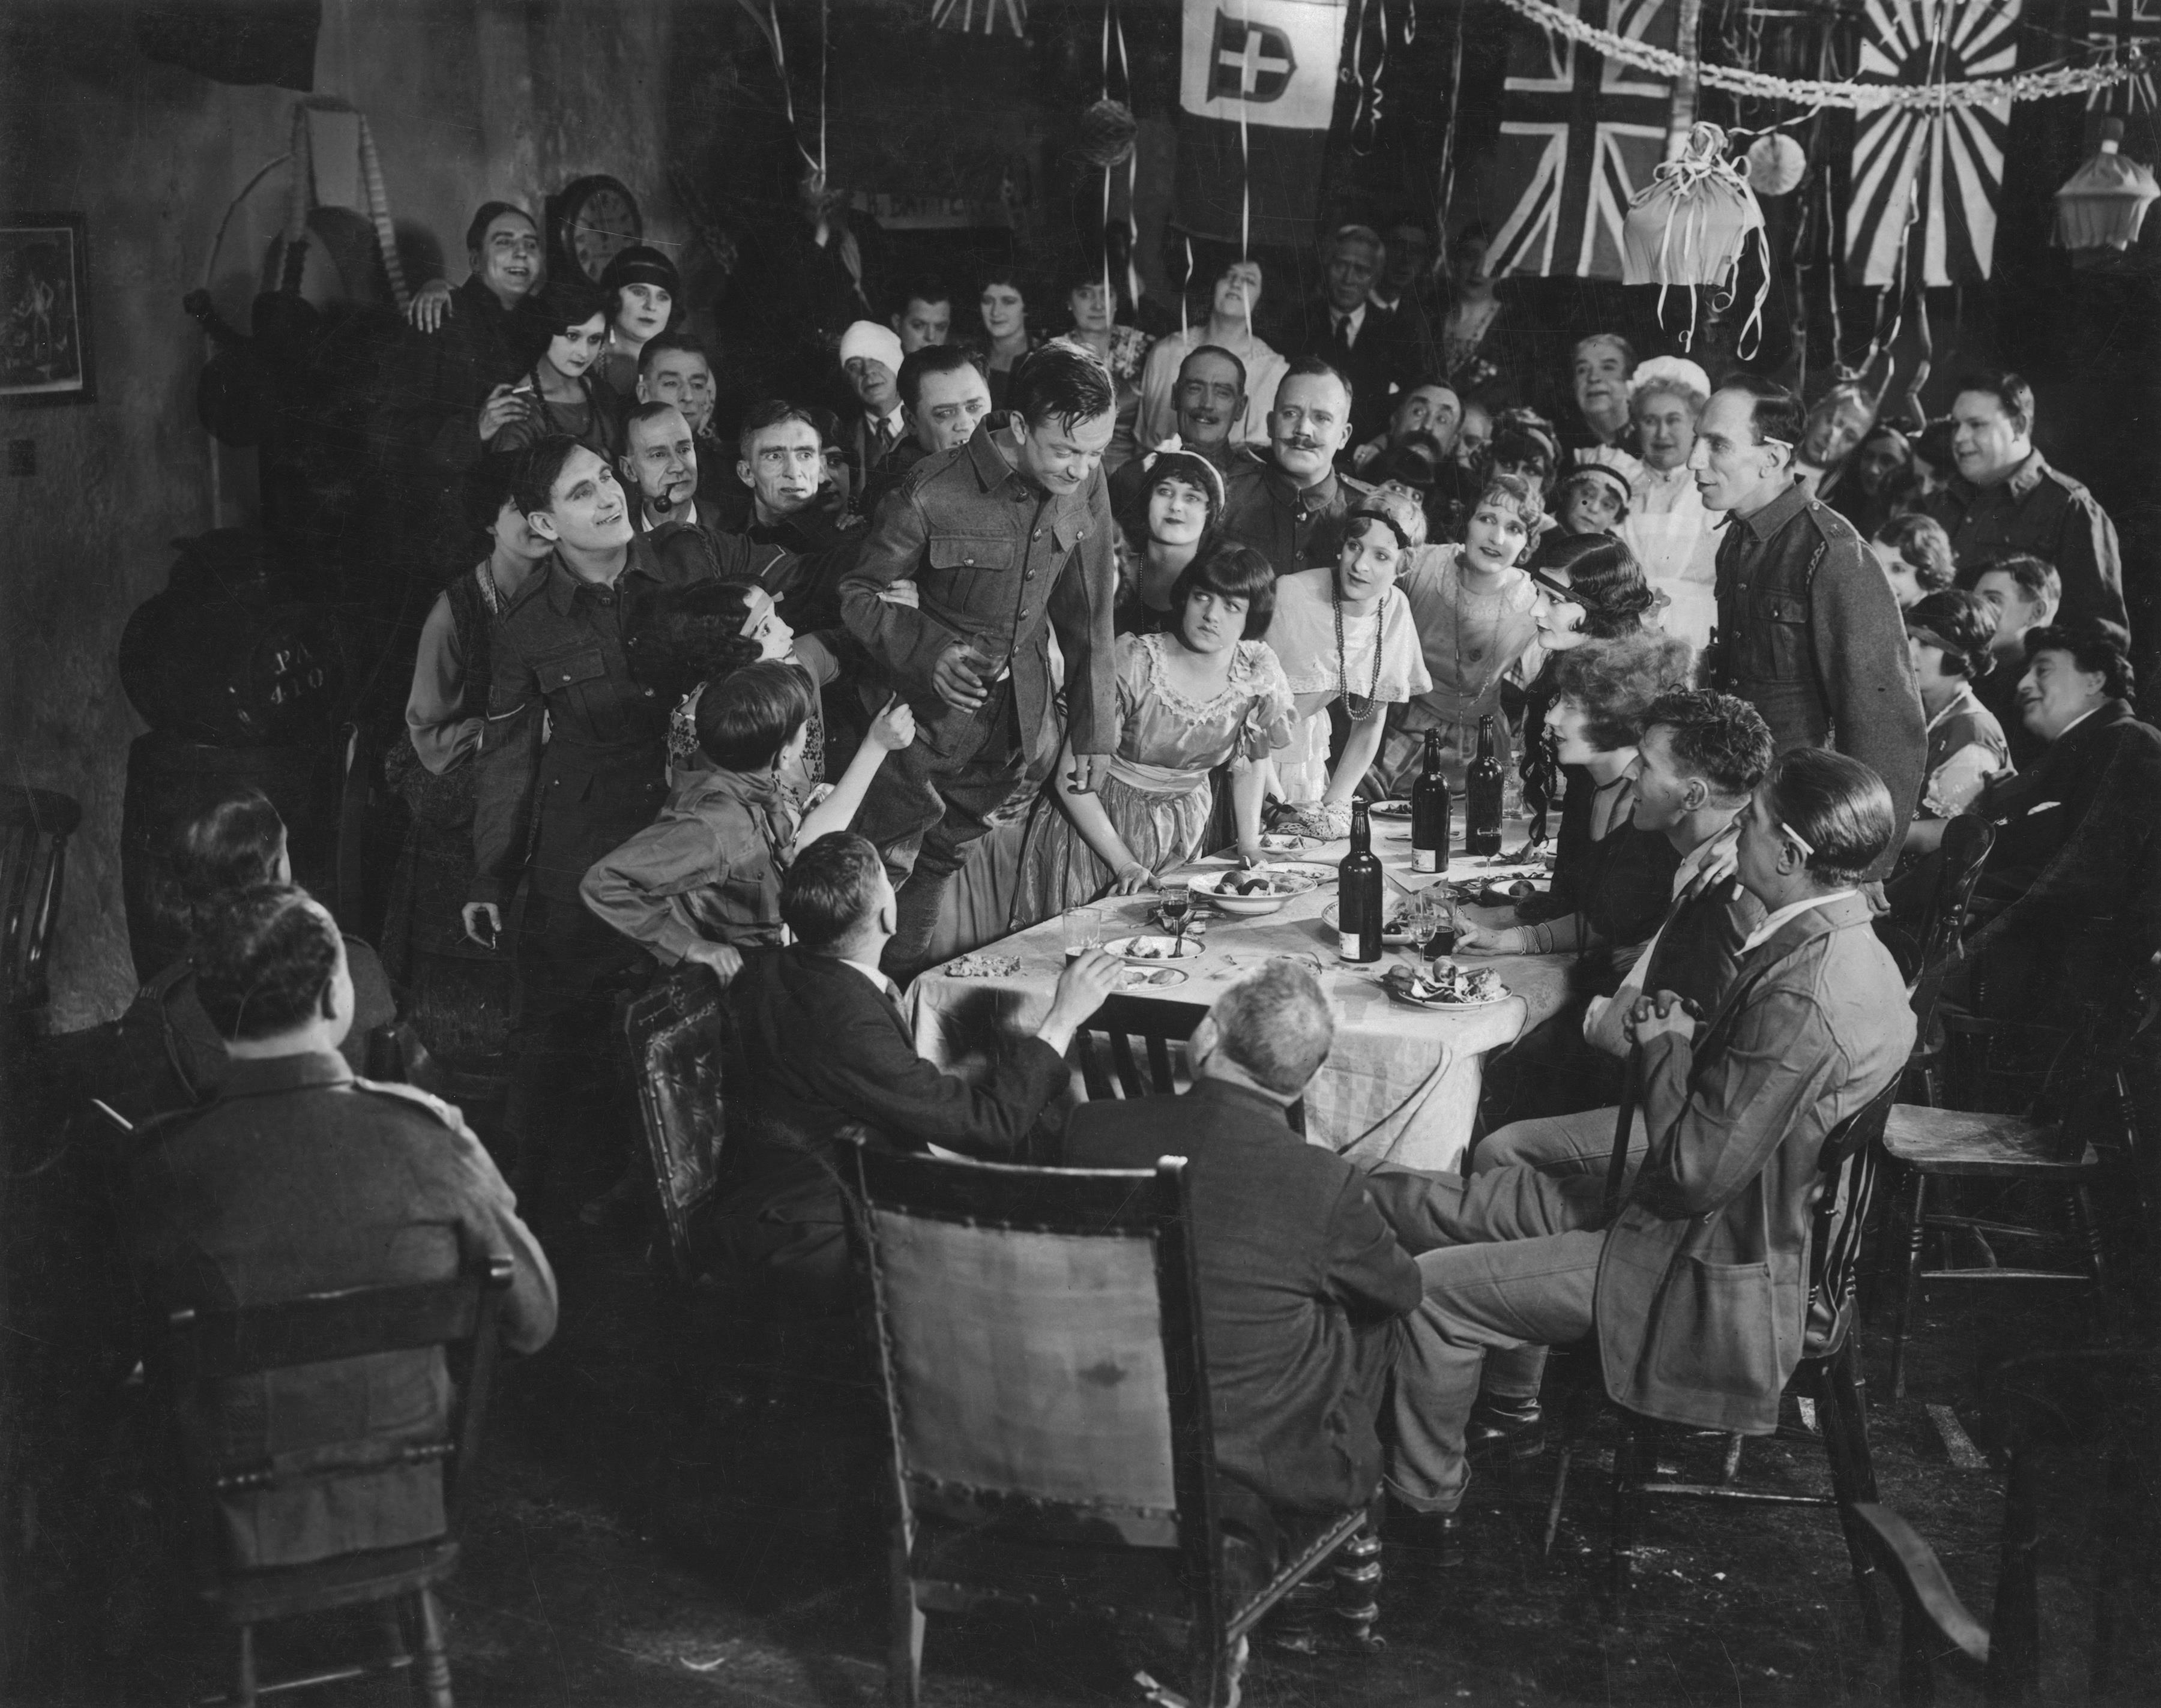 Performing the Film of the Great War - SOUNDINGS Music at